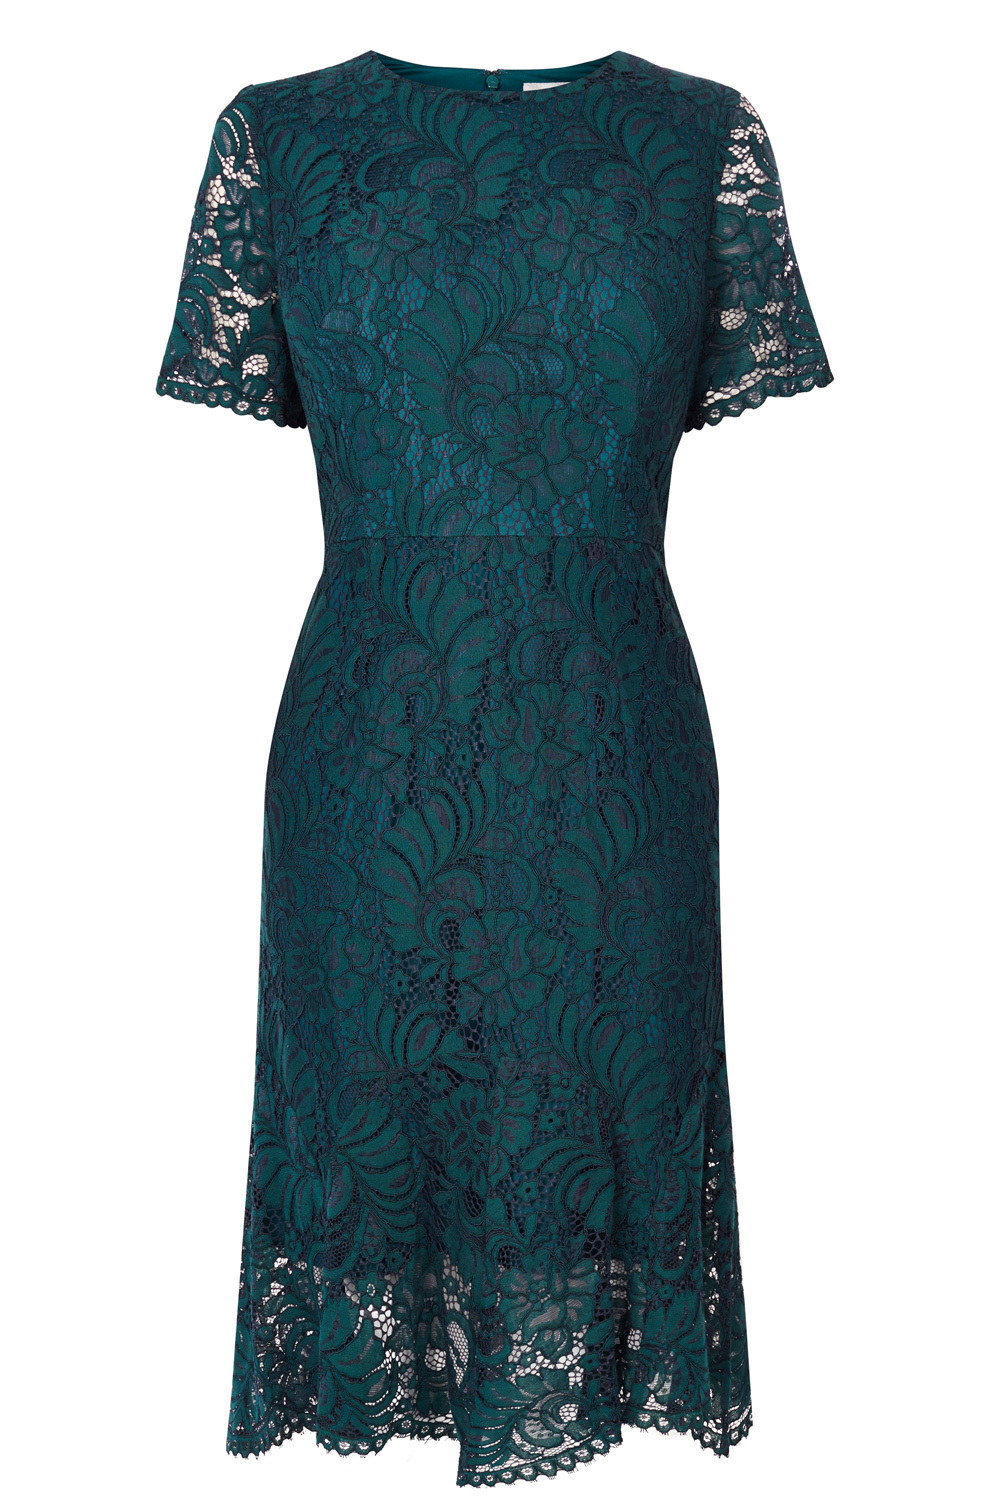 Linera Lace Dress Sl - style: shift; fit: tailored/fitted; predominant colour: teal; occasions: evening, occasion; length: just above the knee; fibres: polyester/polyamide - 100%; neckline: crew; sleeve length: short sleeve; sleeve style: standard; texture group: lace; pattern type: fabric; pattern size: light/subtle; pattern: patterned/print; season: a/w 2016; wardrobe: event